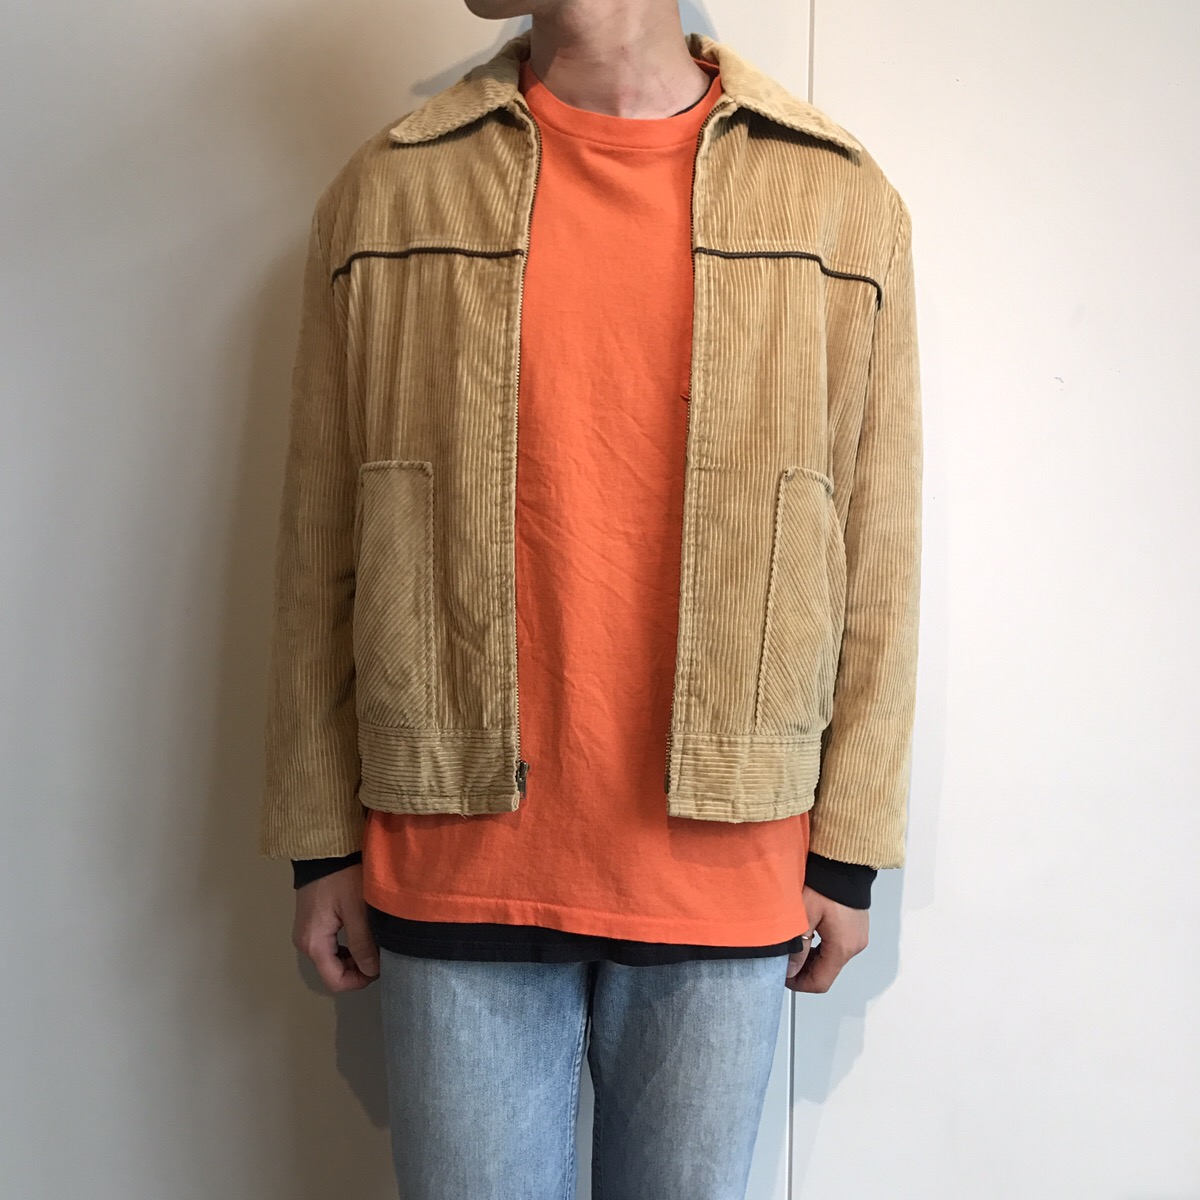 70-80s campus corduroy jacket made in USA